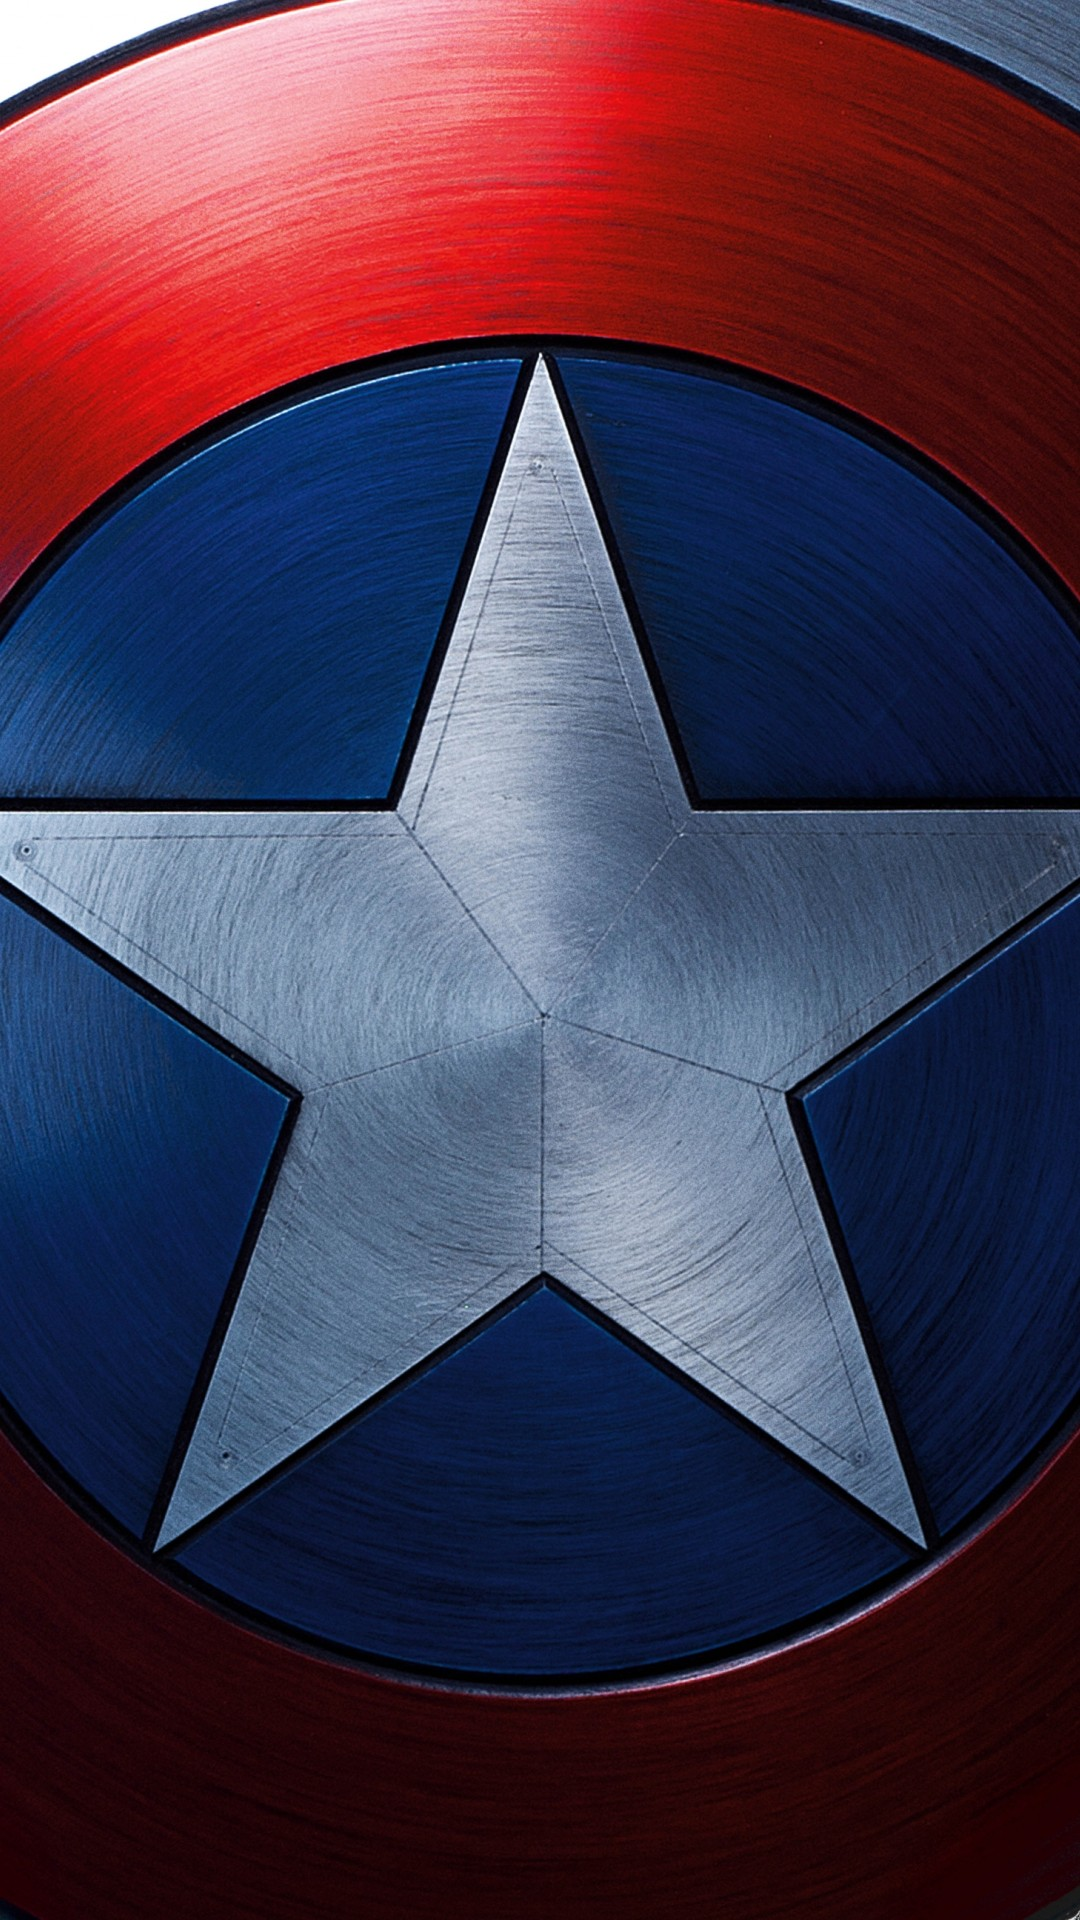 1920x1080 Marvel Wallpaper for Iphone.